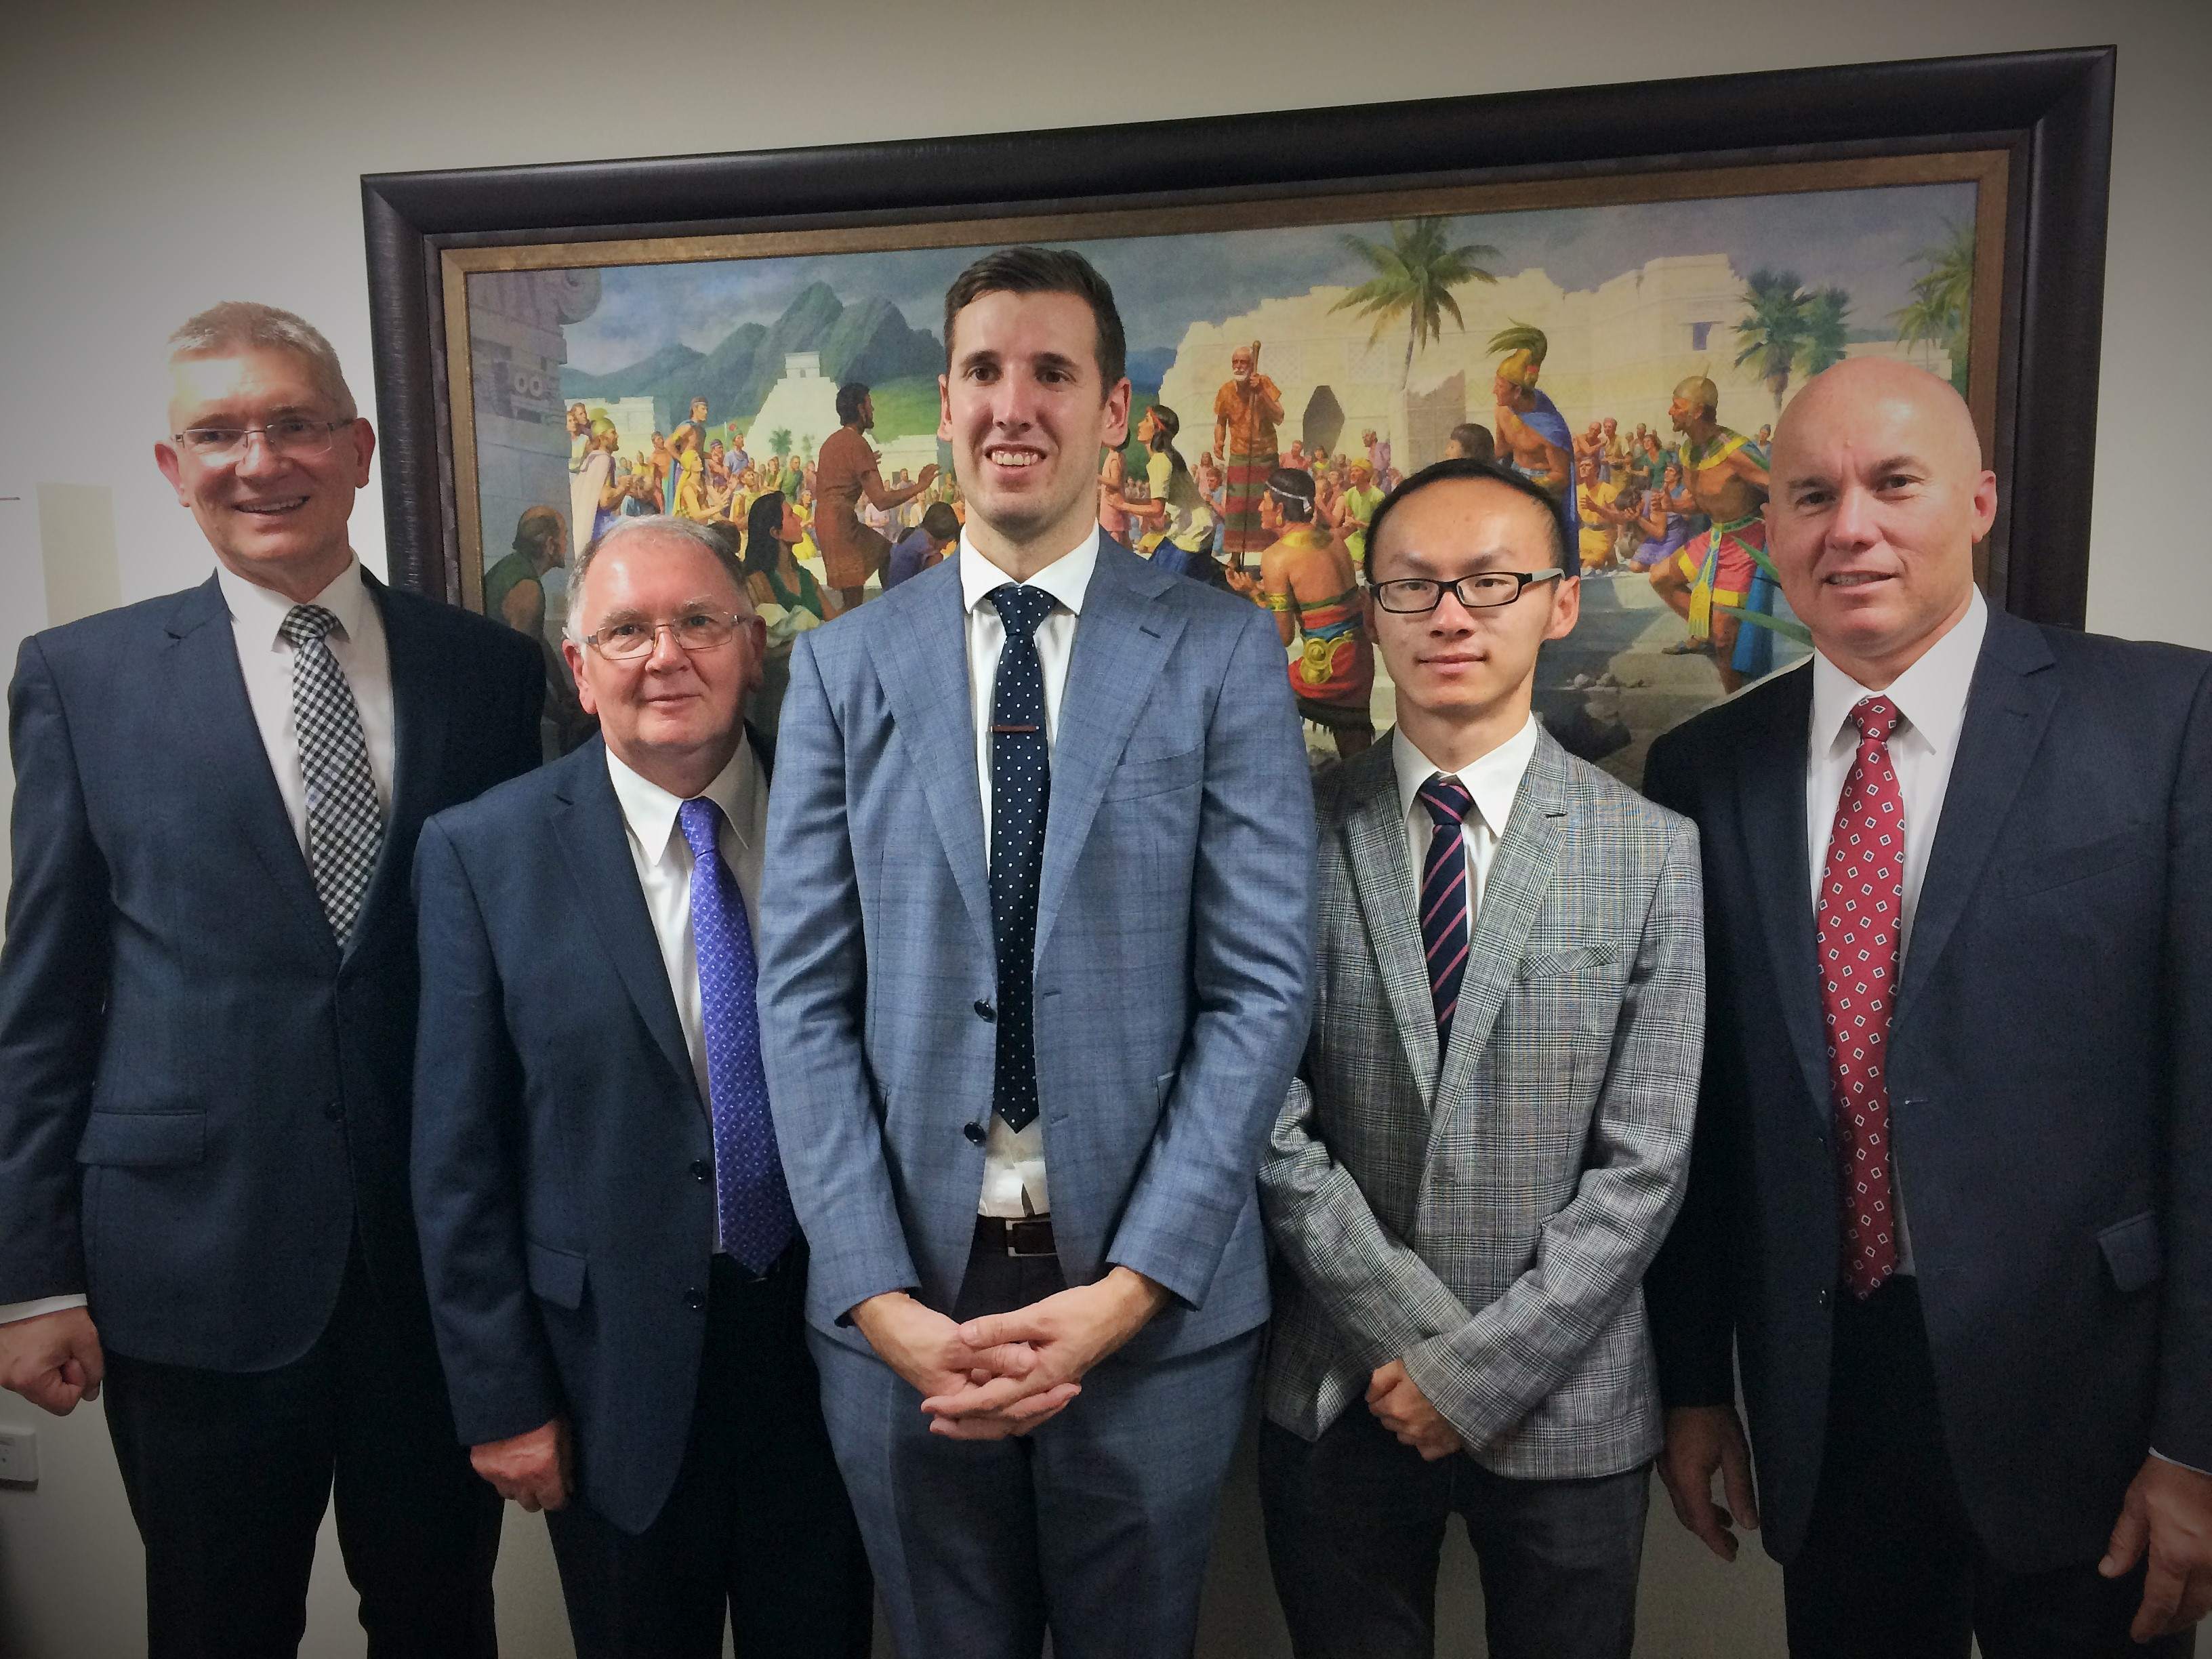 New leadership, L-R: Firle stake president Rainer Korte with Adelaide city branch counsellor John Addis, branch president Shaun Scott, counsellor Mark Ruan and Eldr And5rew O'Riordan of the Seventy.